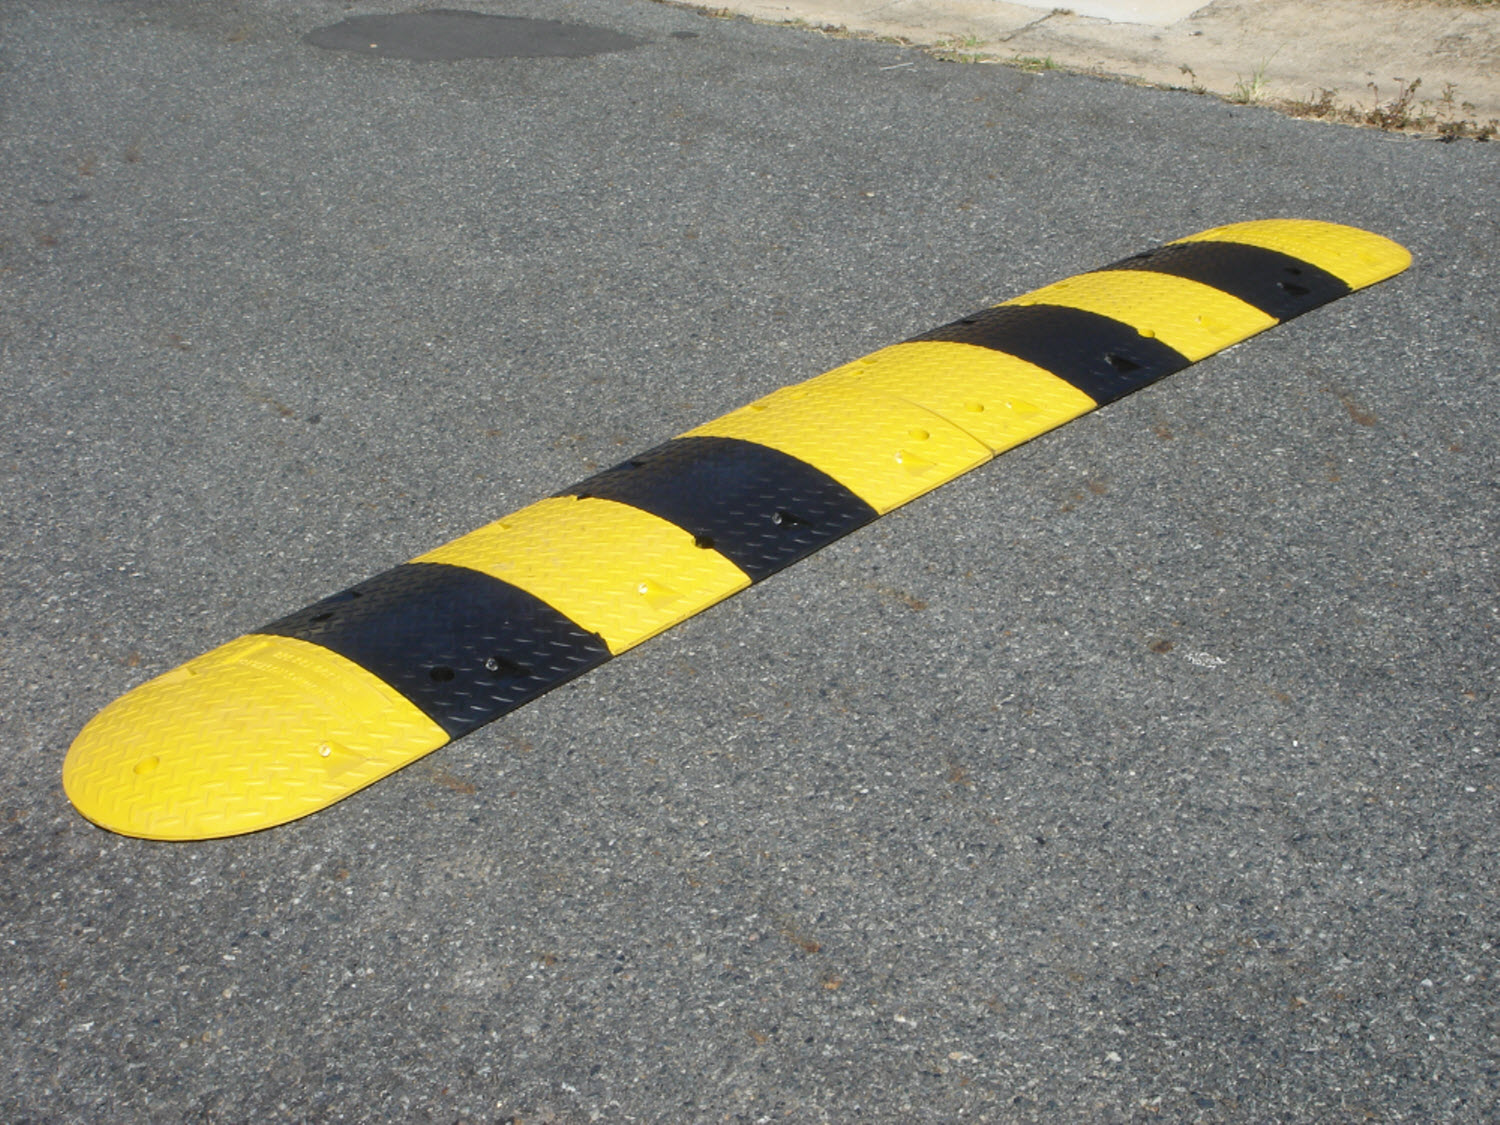 Speed Hump | Speed Bump | Standard Speed Humps from Speed Humps Australia